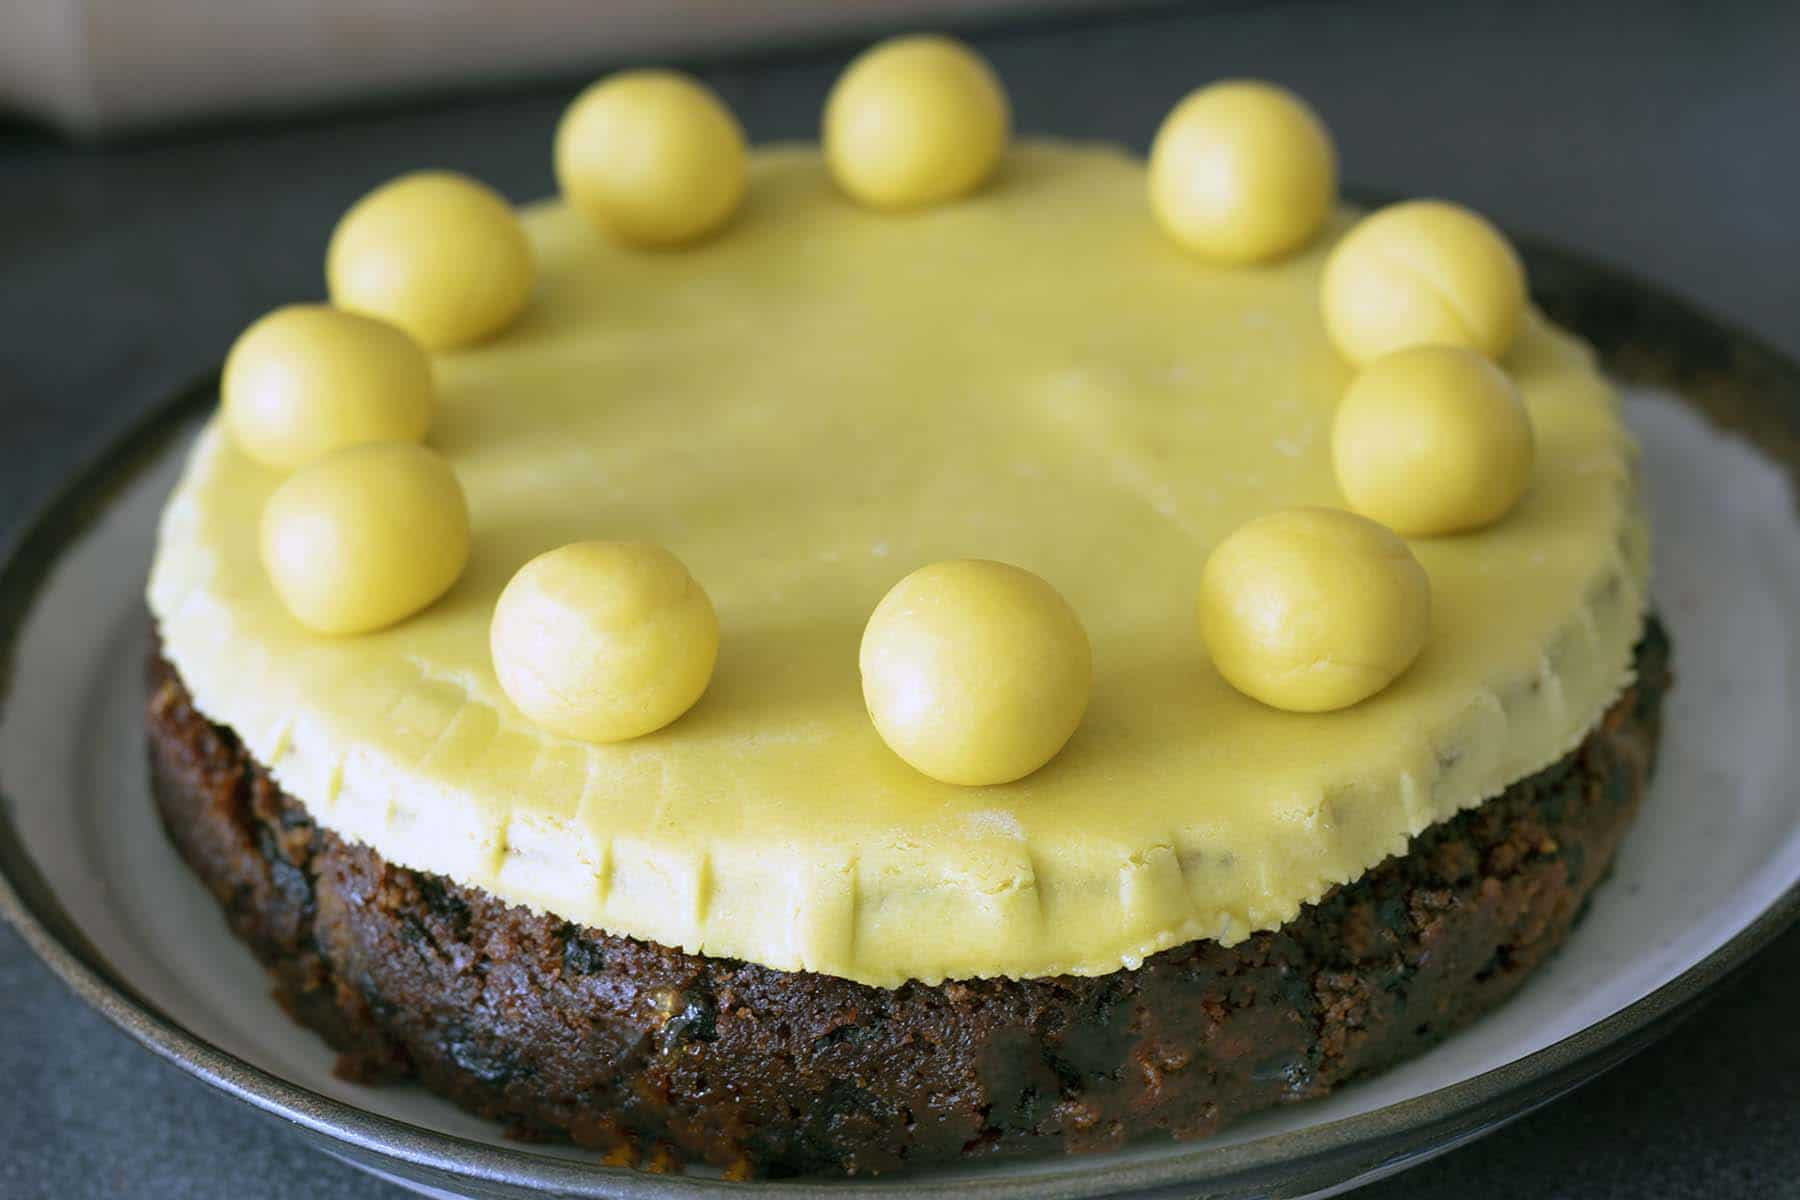 simnel cake topped with marzipan and marzipan balls